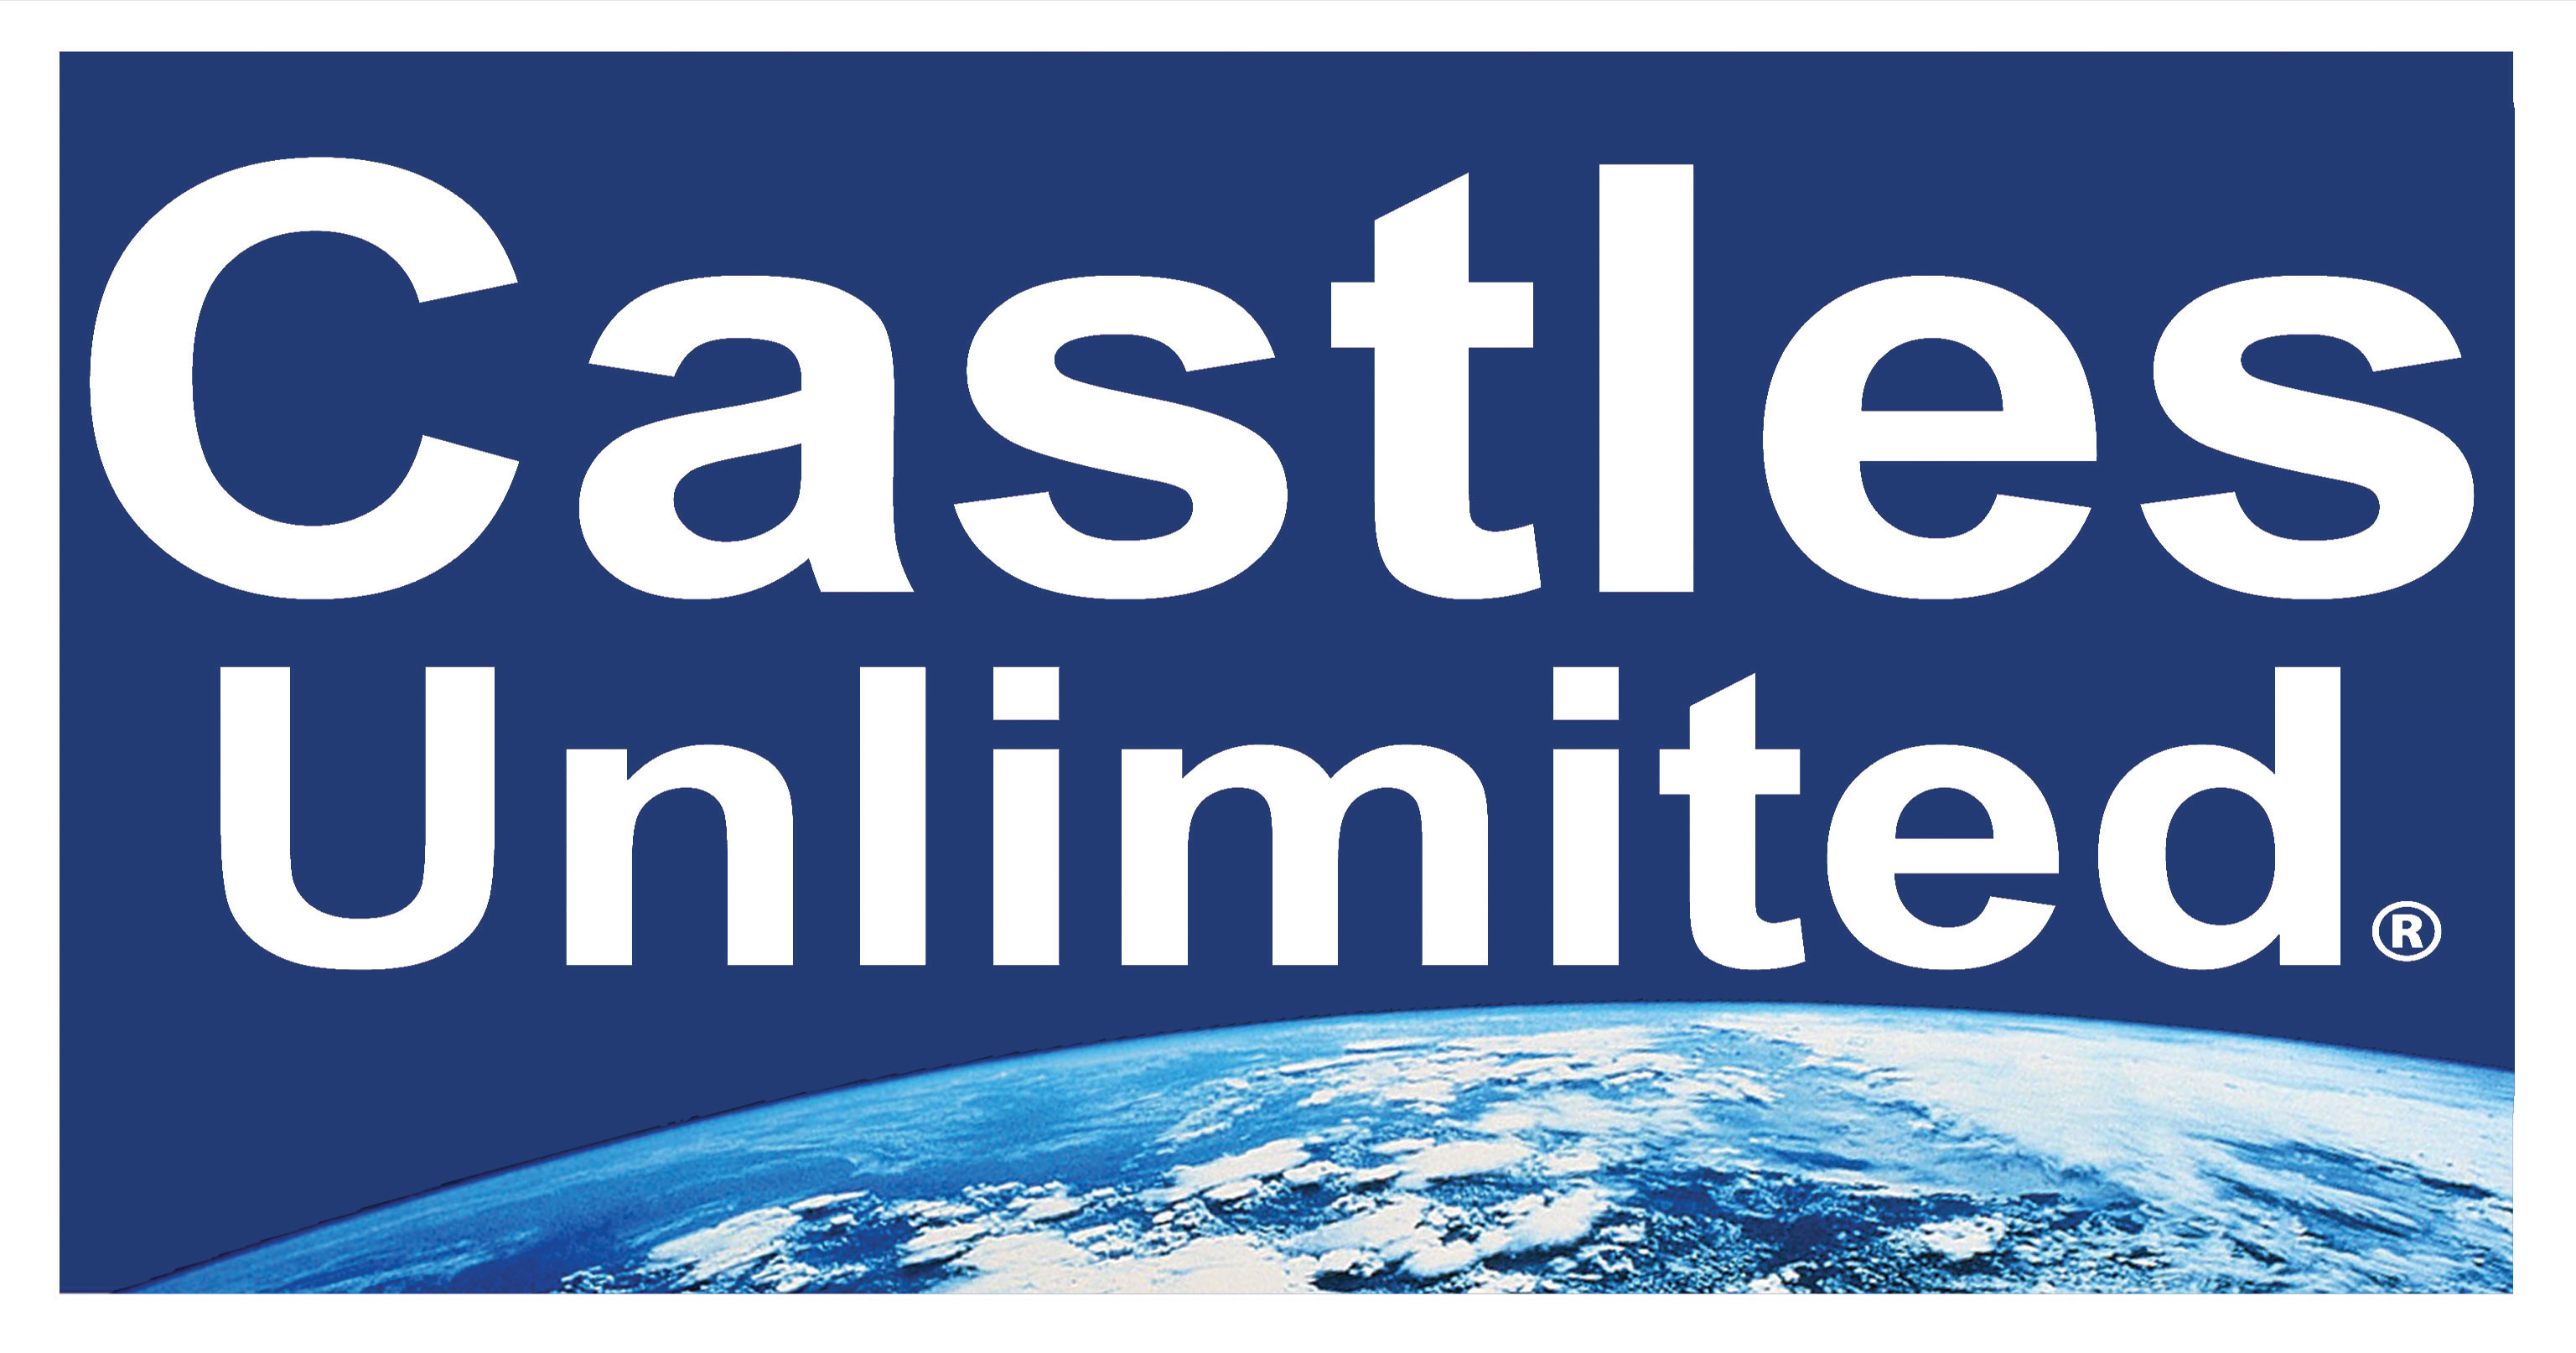 CASTLES UNLIMITED, NEWTON, MA